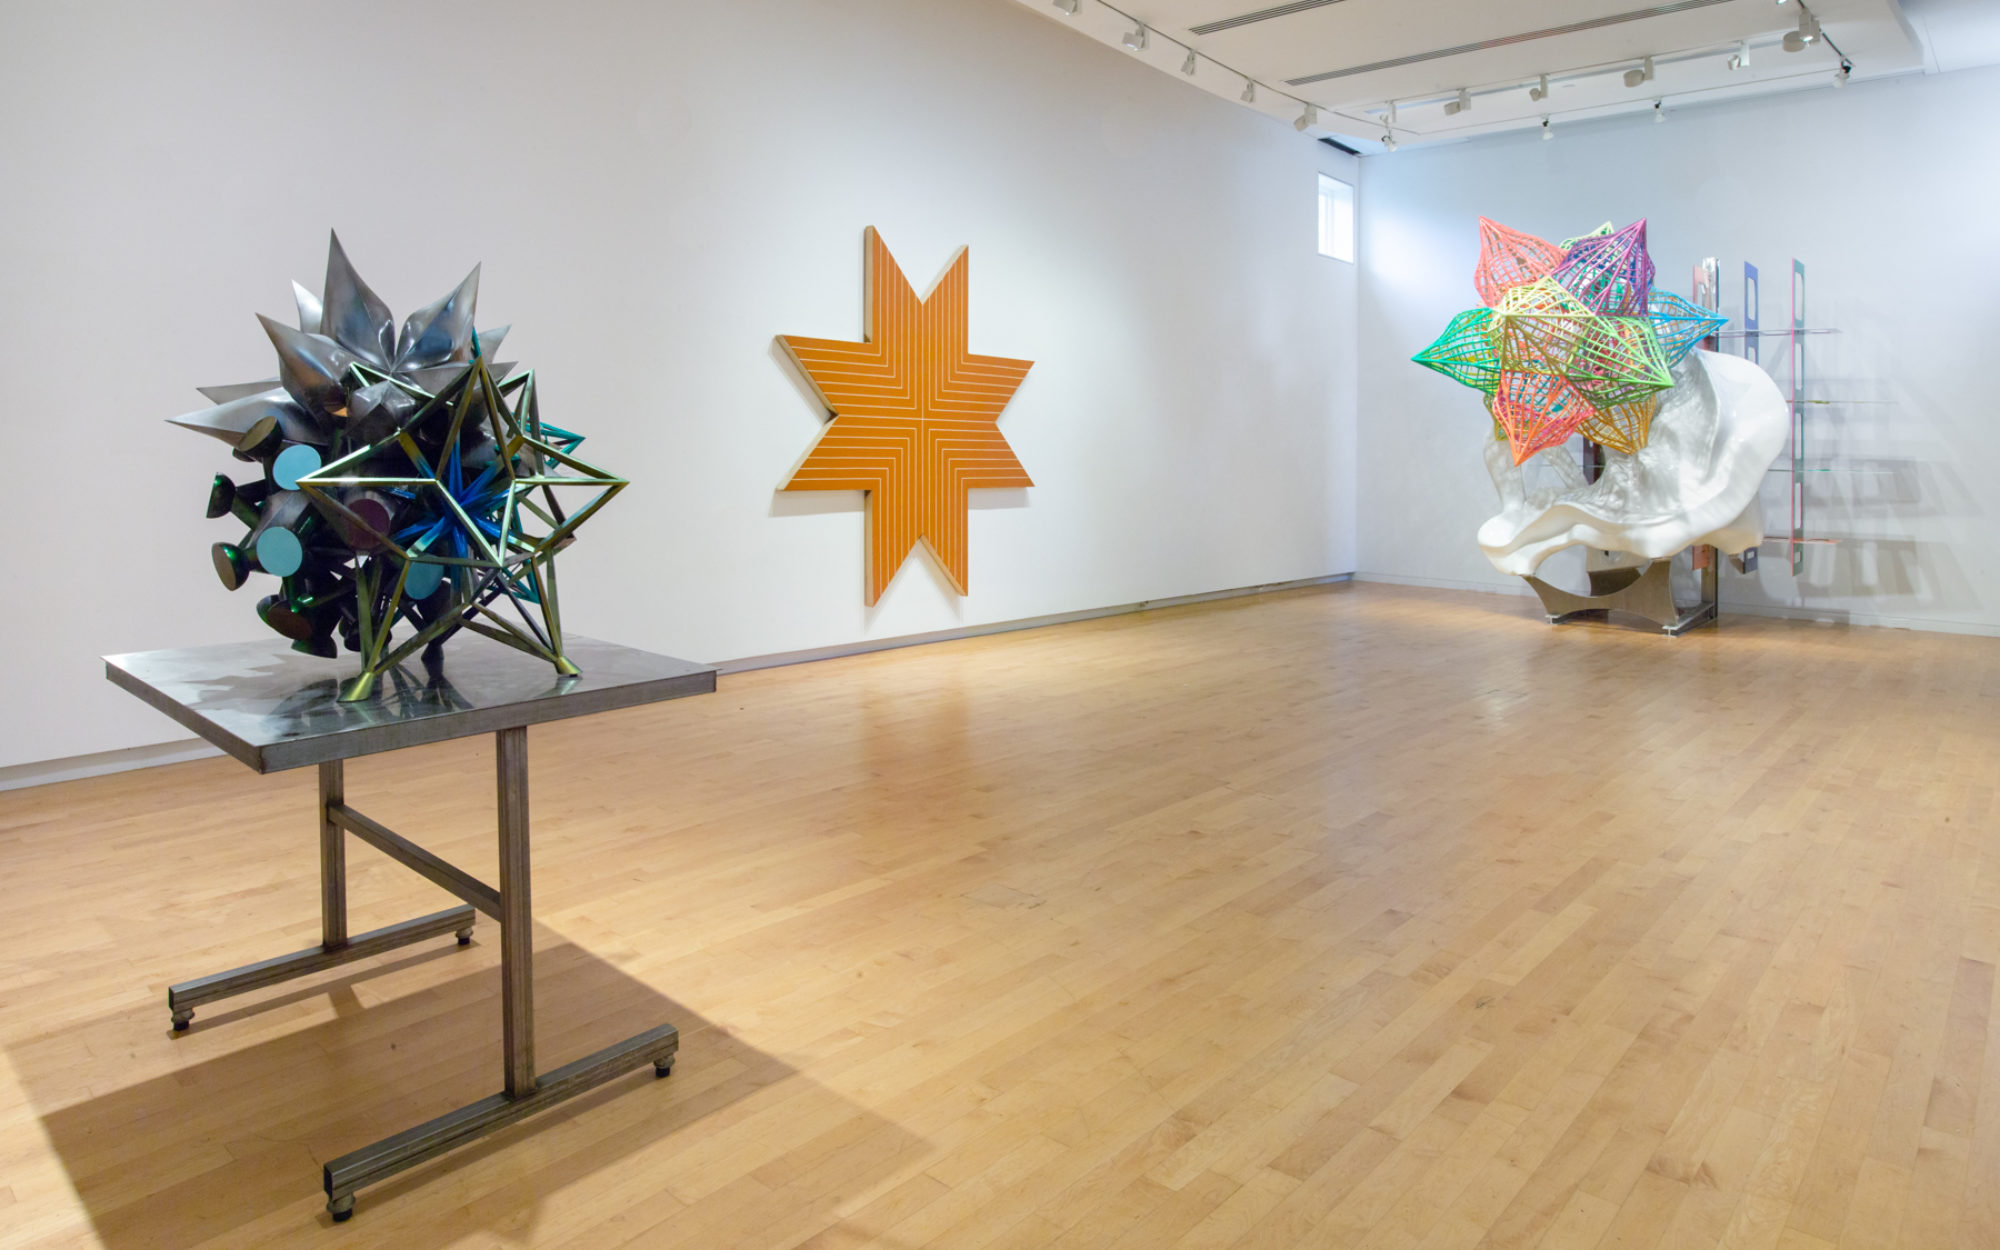 Photo of gallery with a small sculpture to left, a large star-shaped painting at center, and a large sculpture featuring a colorful star to the right.